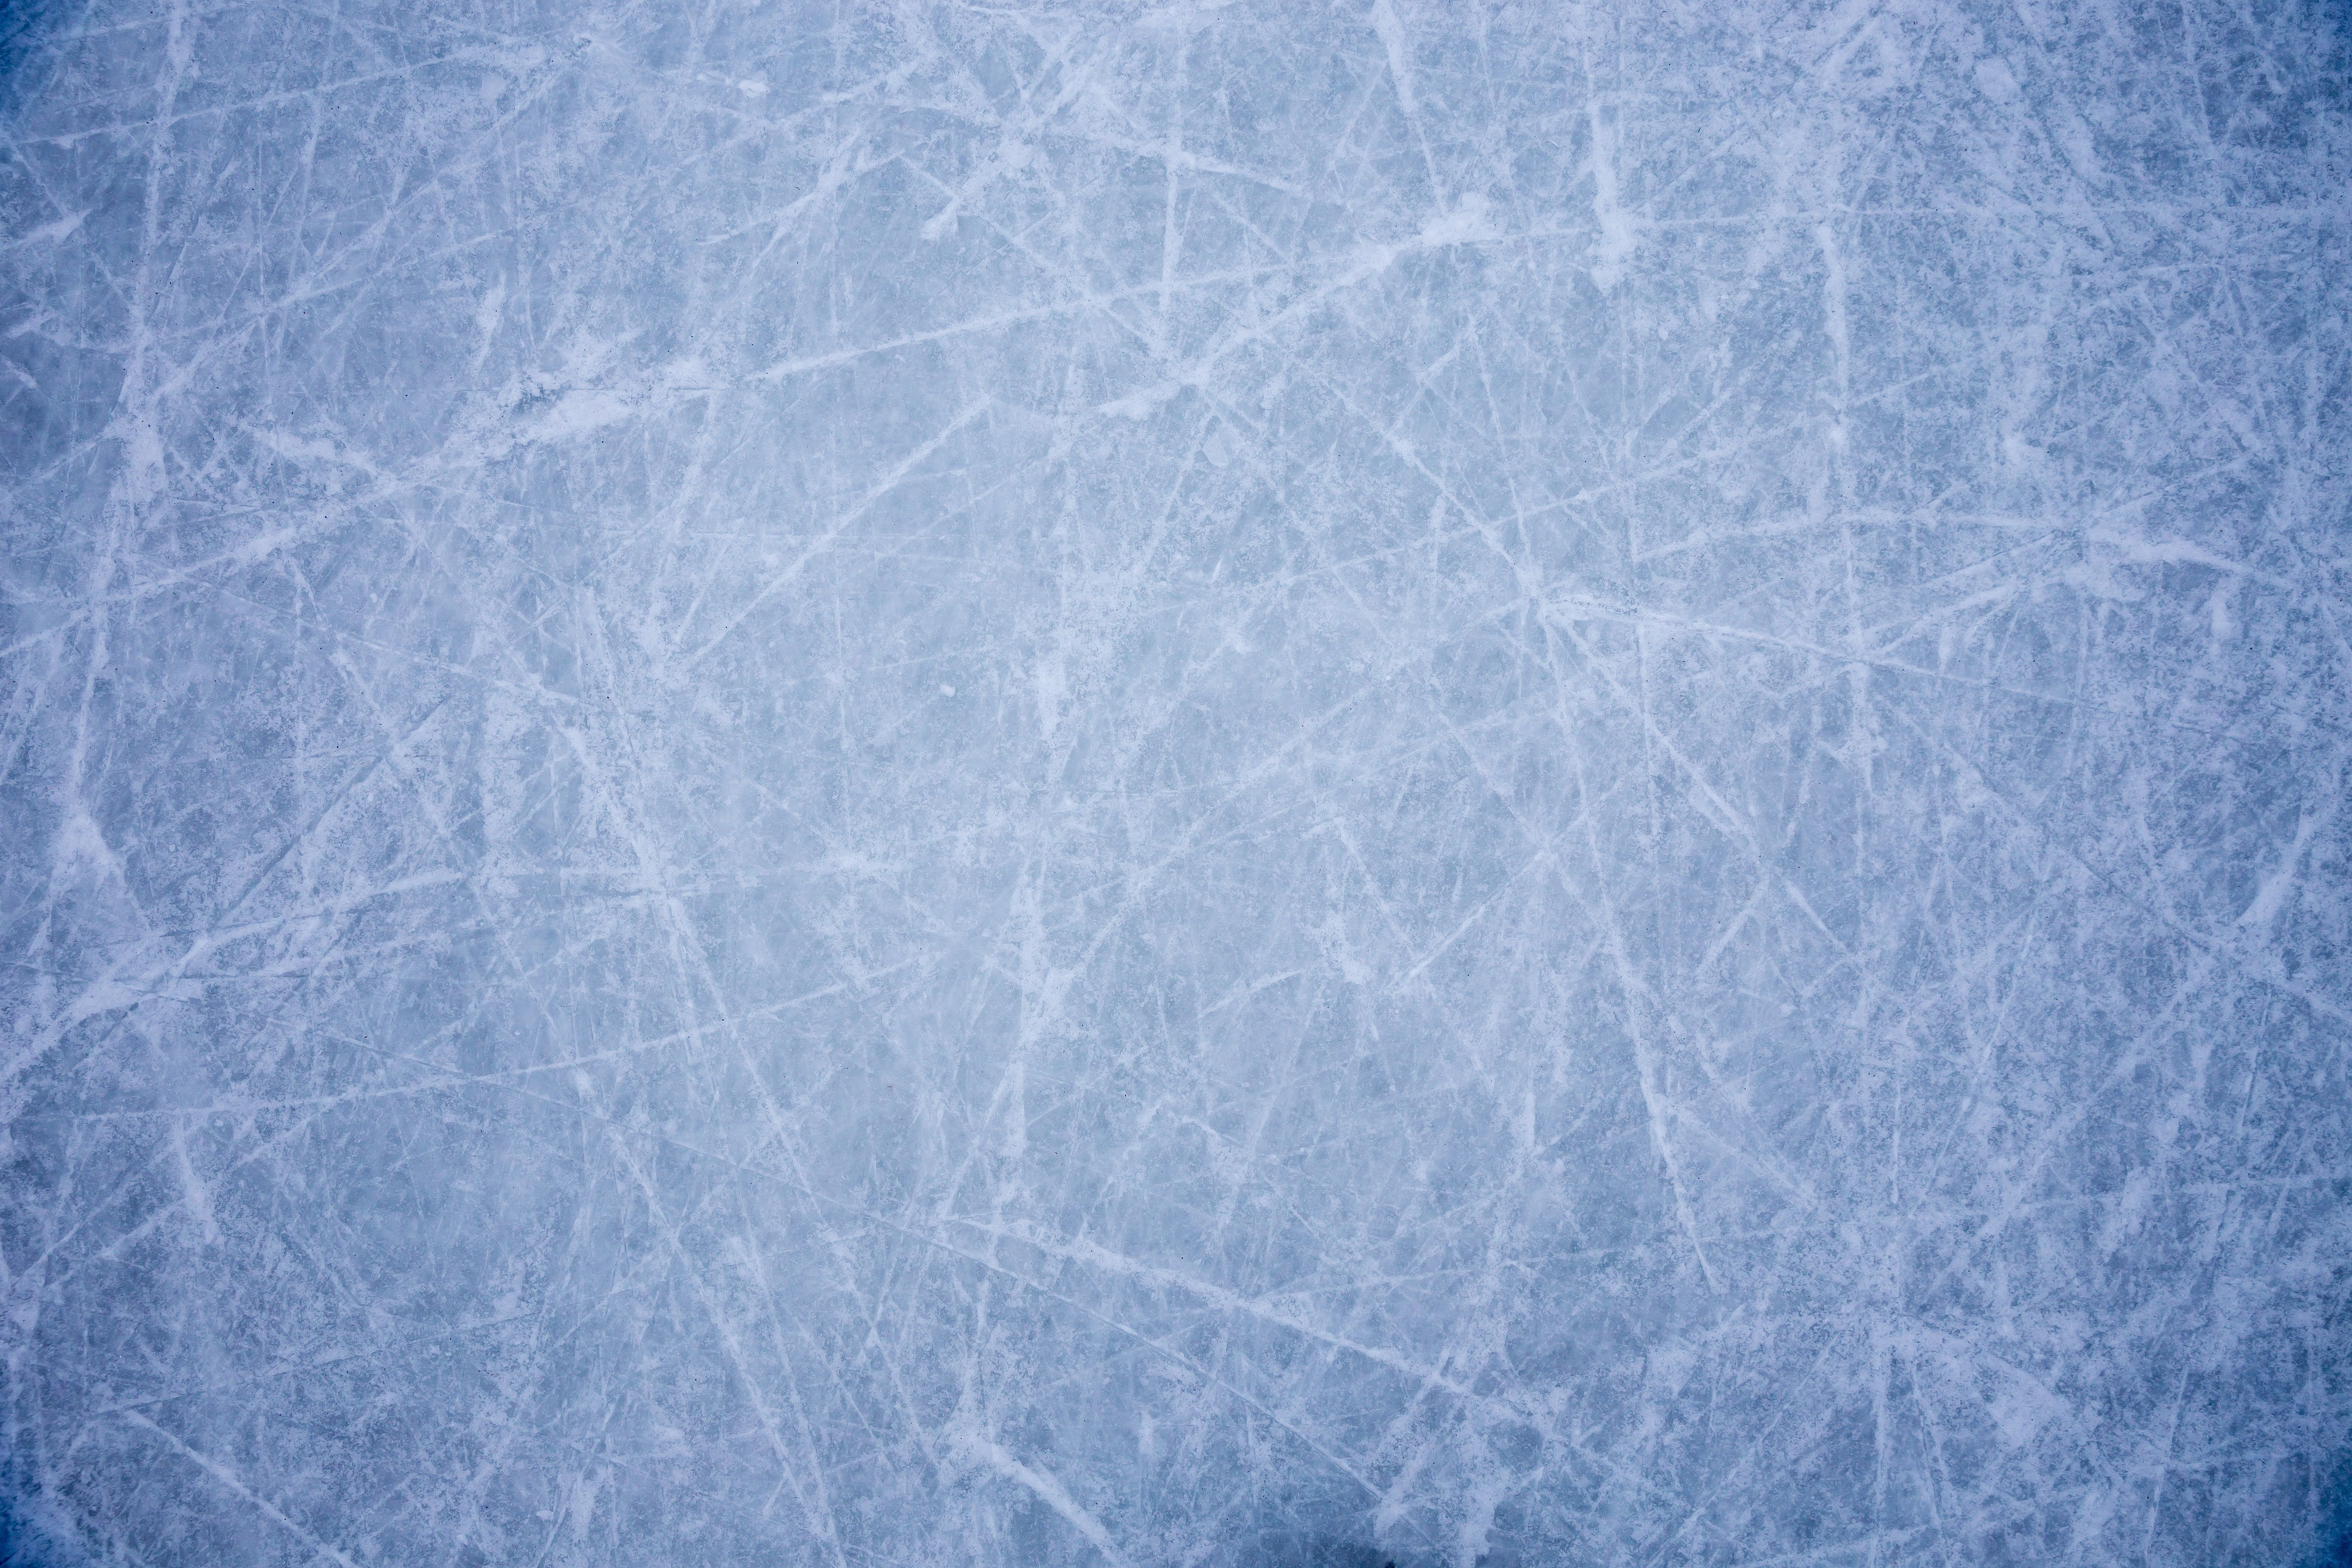 Ice Background Royalty Free Images Clip Art Photo